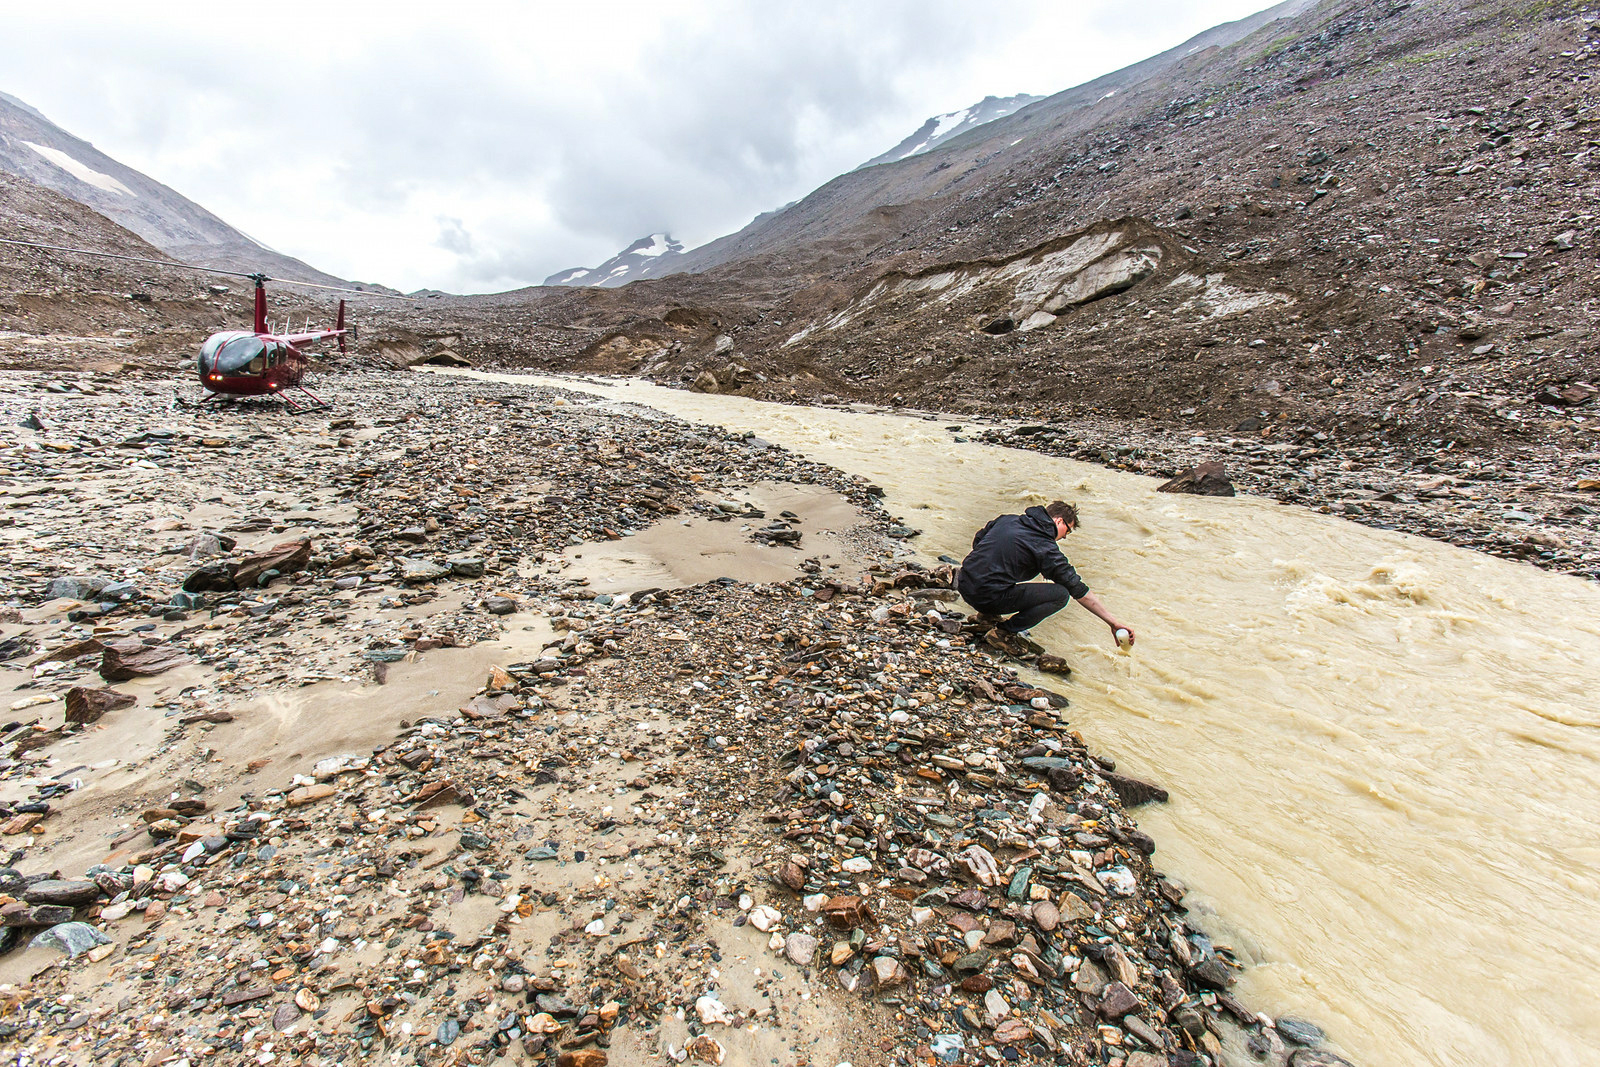 UAF researchers grab a water sample for geochemical analysis at the mouth of the Jarvis Glacier in 2014. Jarvis Glacier is in the Alaska Range south of Delta Junction. (Todd Paris / UAF)